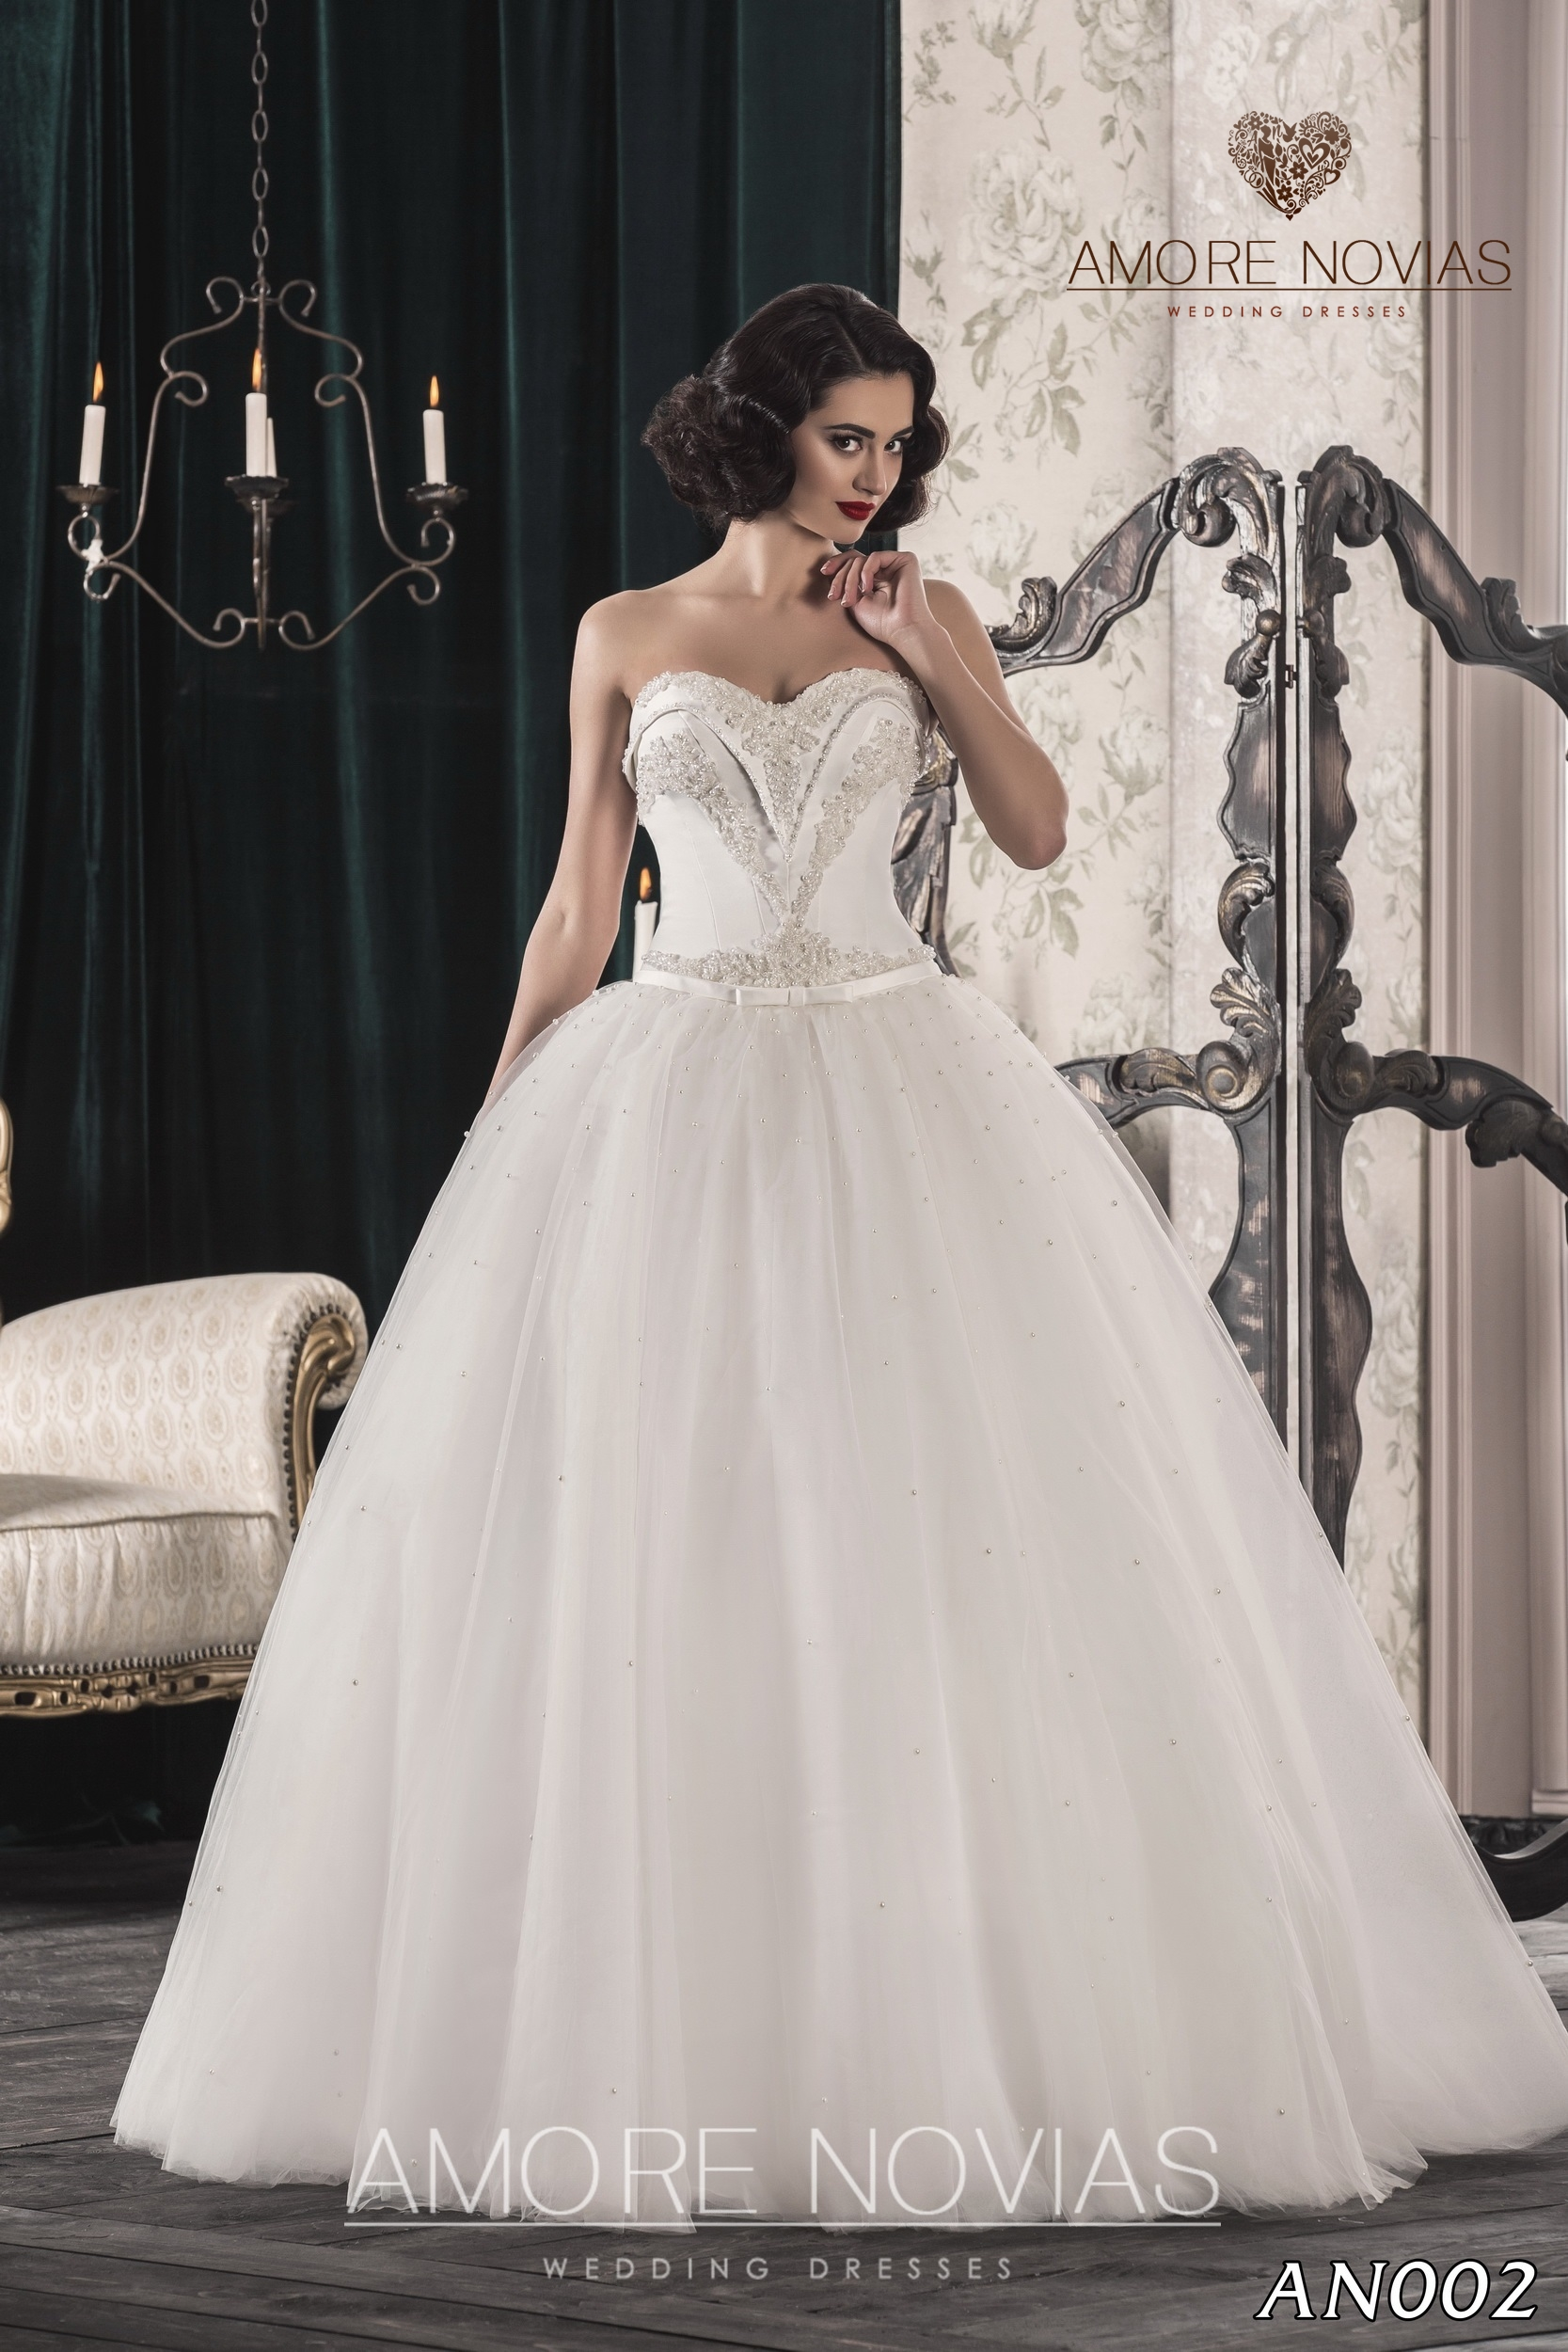 http://amore-novias.com/images/stories/virtuemart/product/an002.jpg